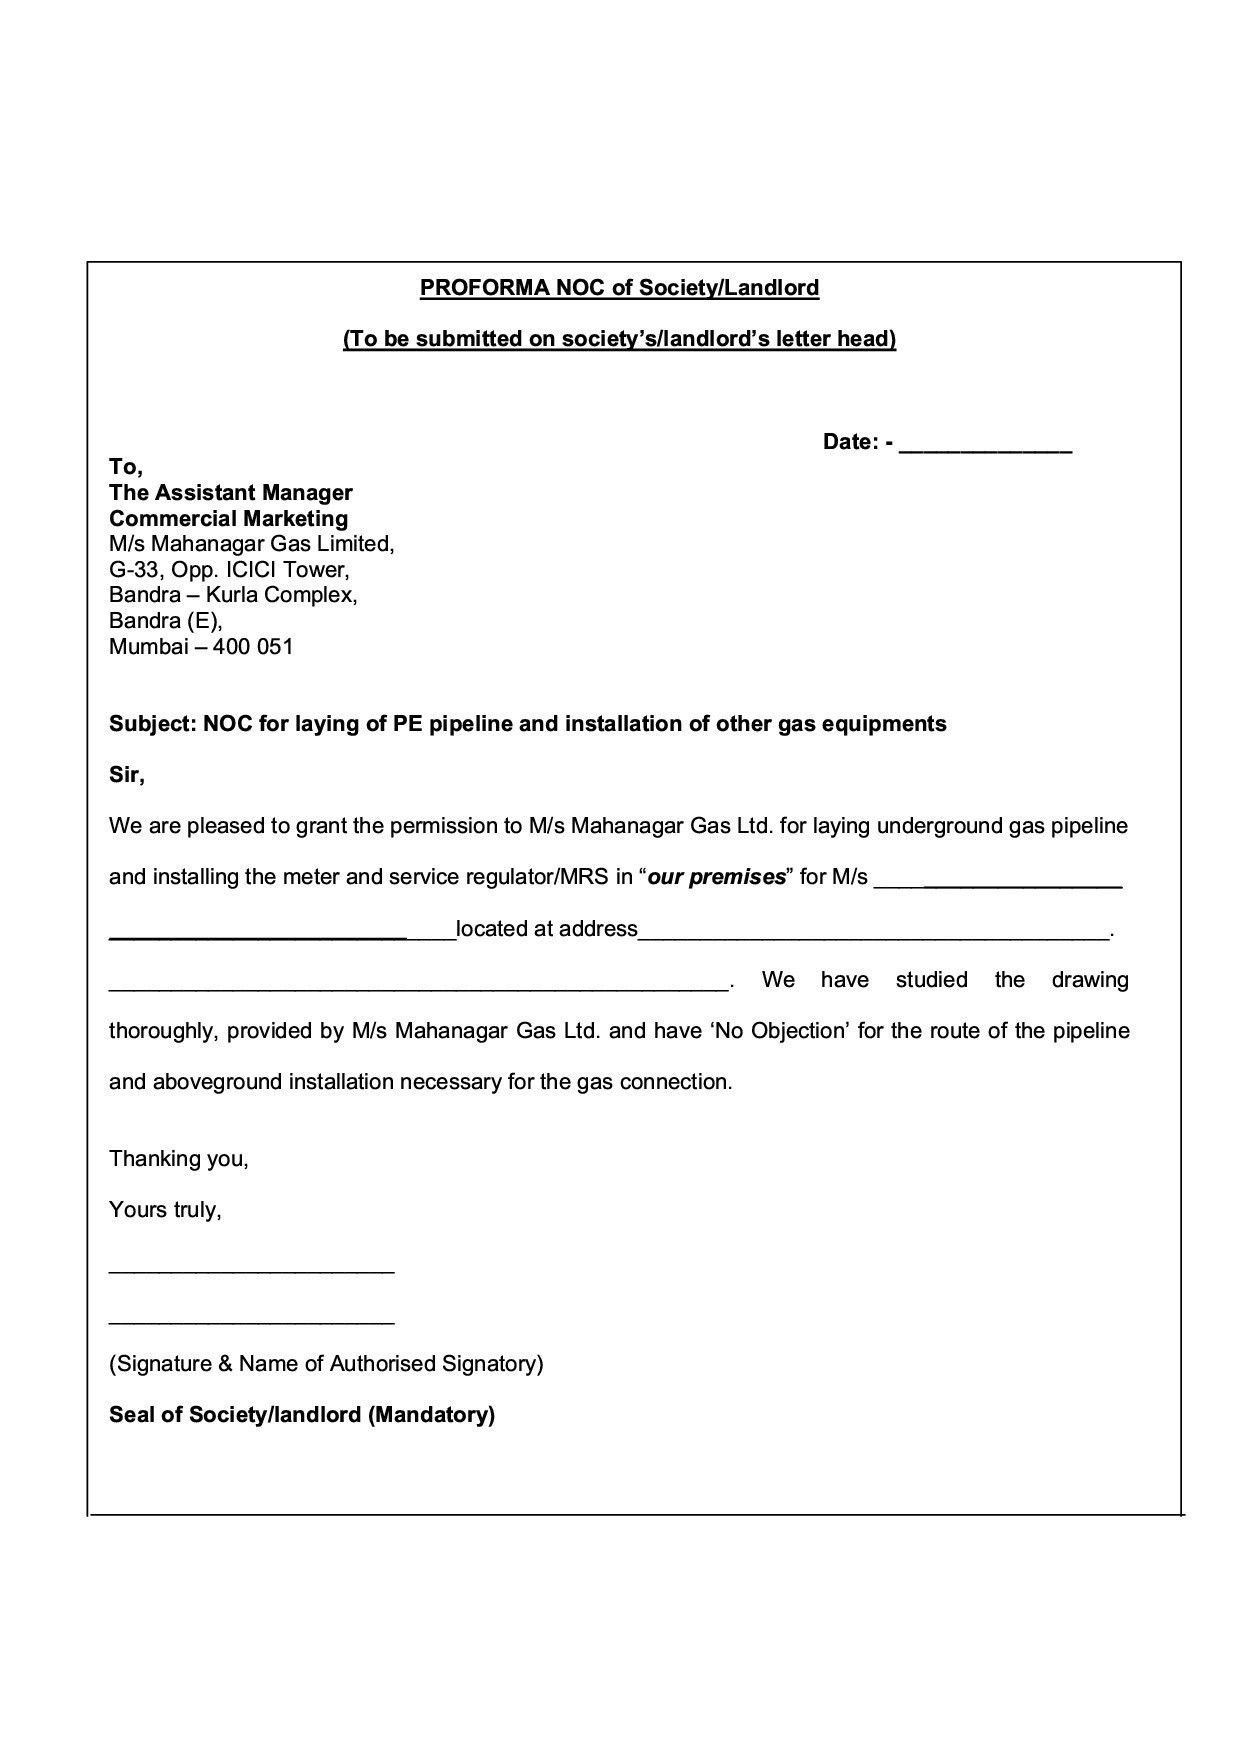 You Can See This New Request Letter Format For Noc From Society At